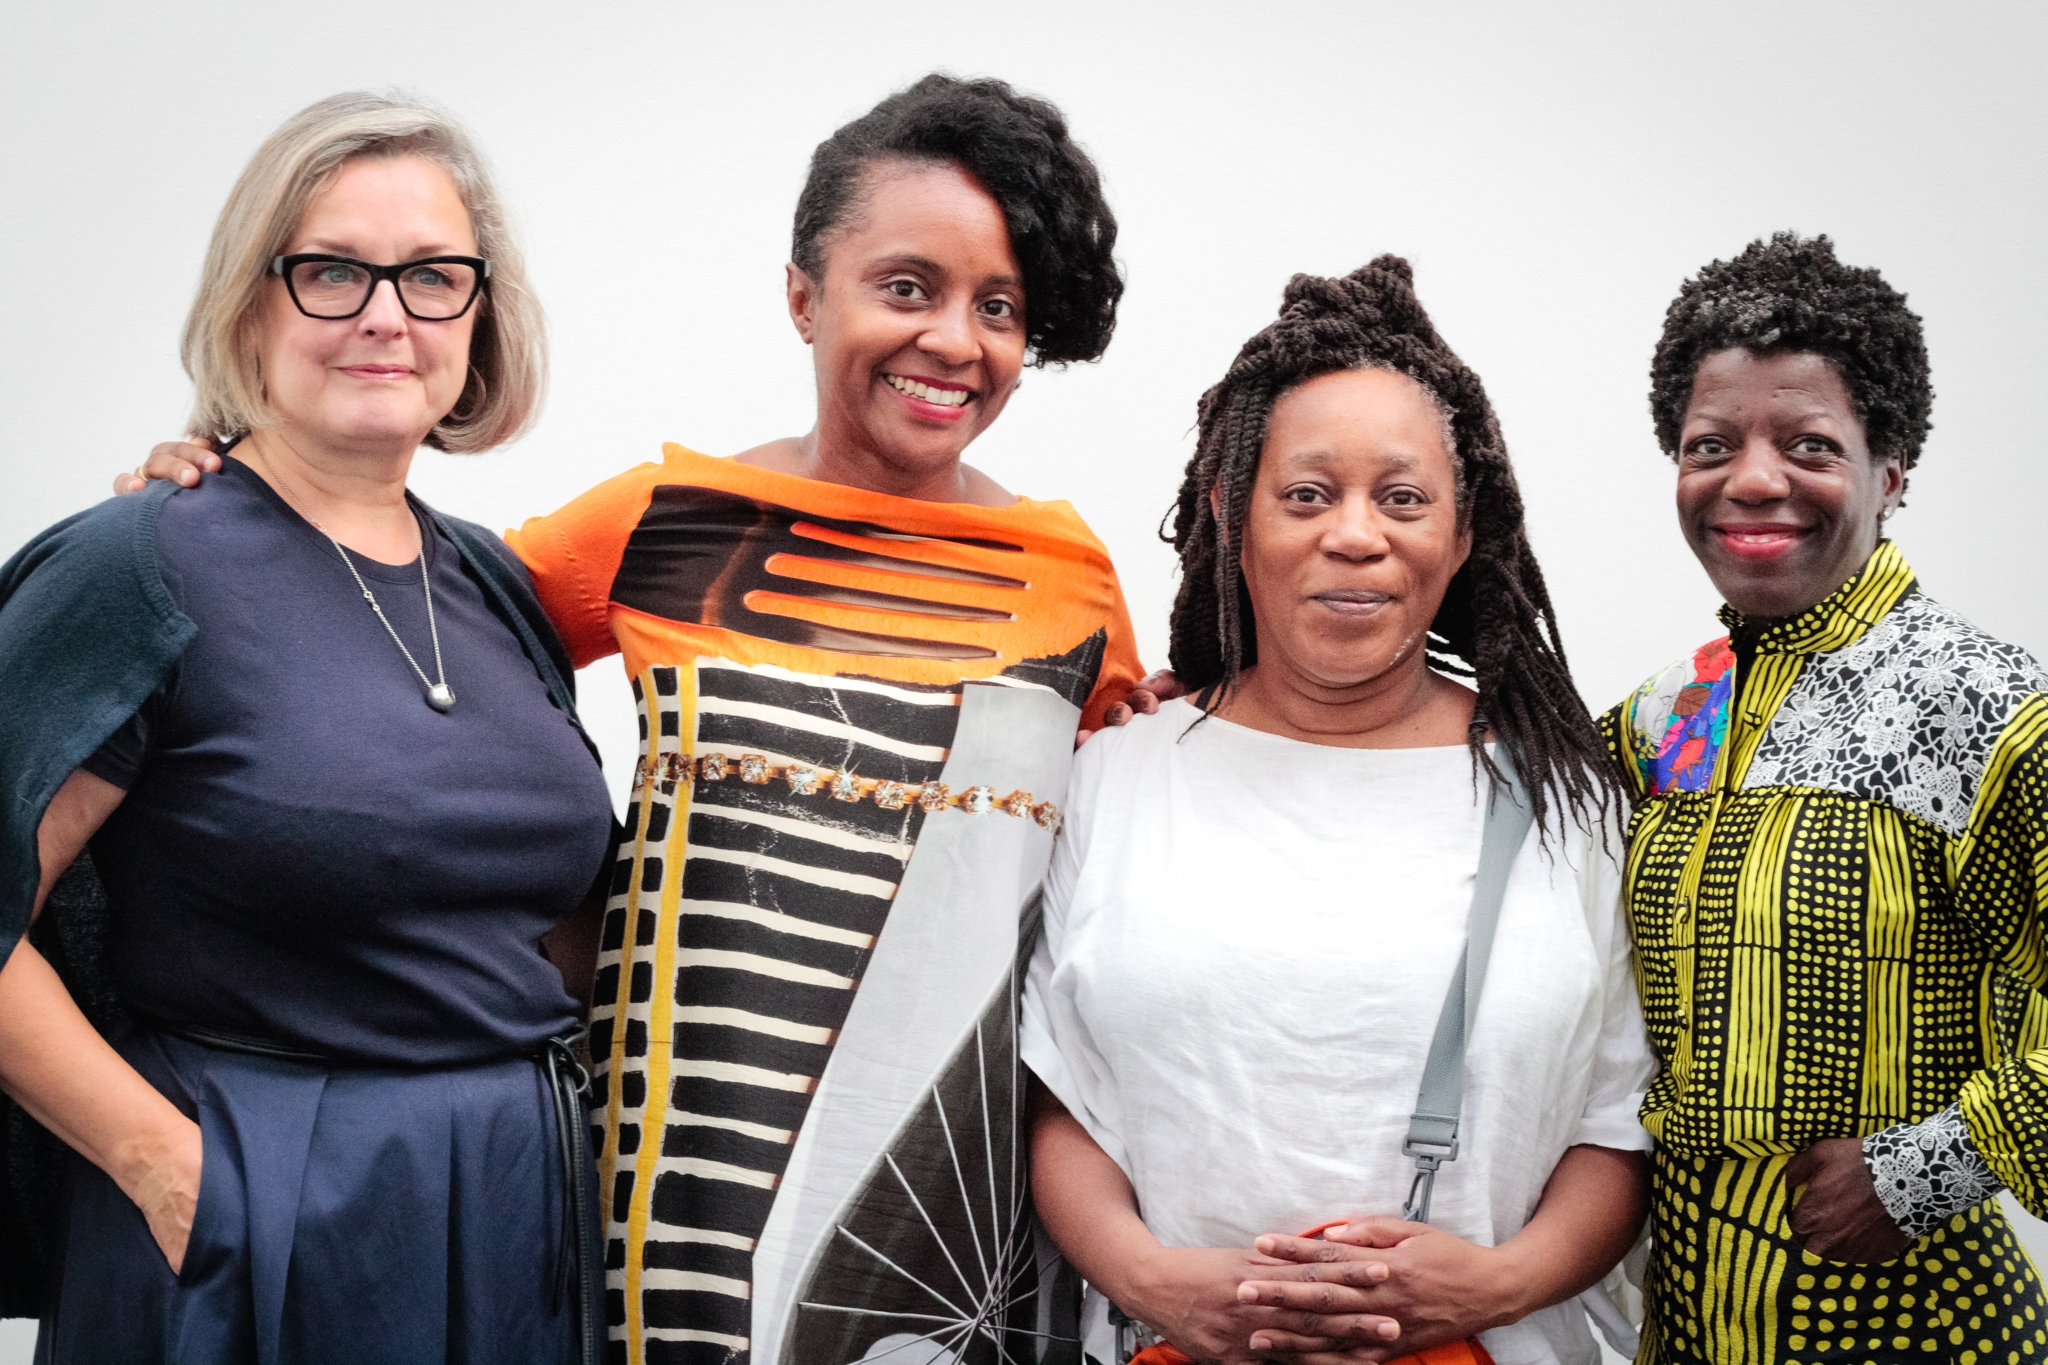 Caroline Douglas, Zoe Whitley, Sonia Boyce and Thelma Golden